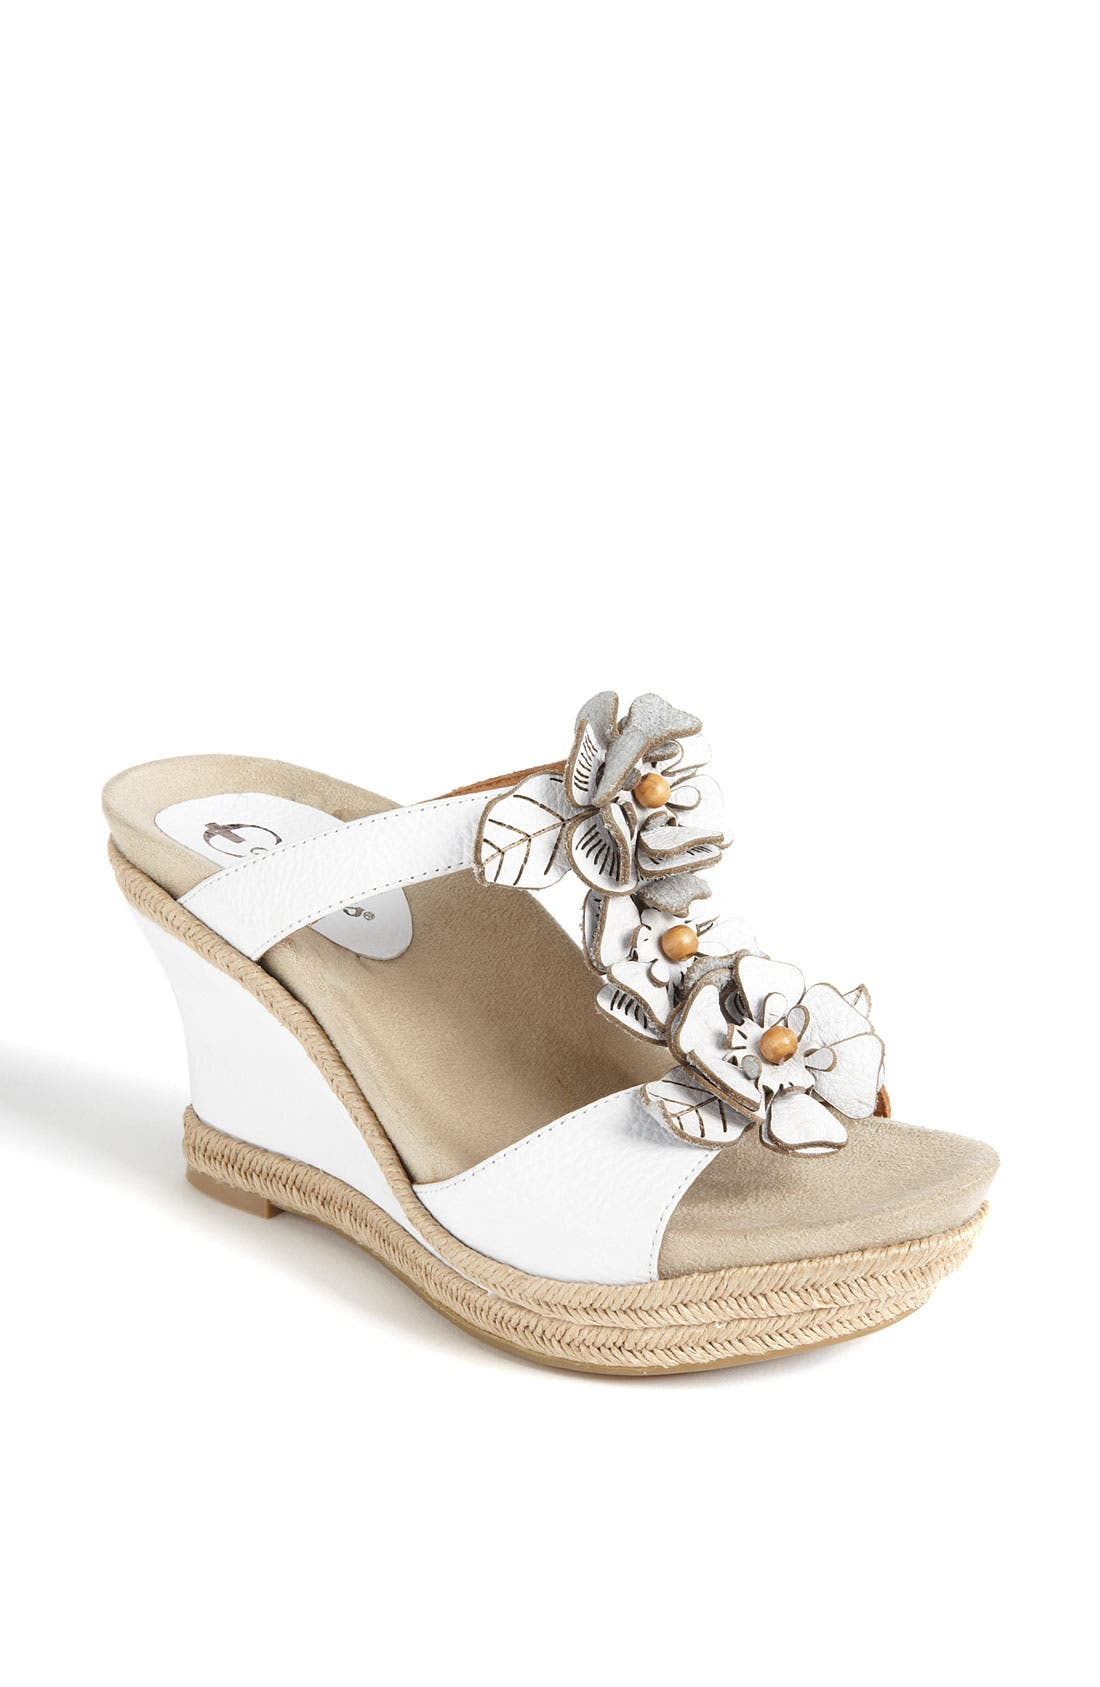 Main Image - Earthies® 'Bellini' Wedge Sandal (Exclusive)